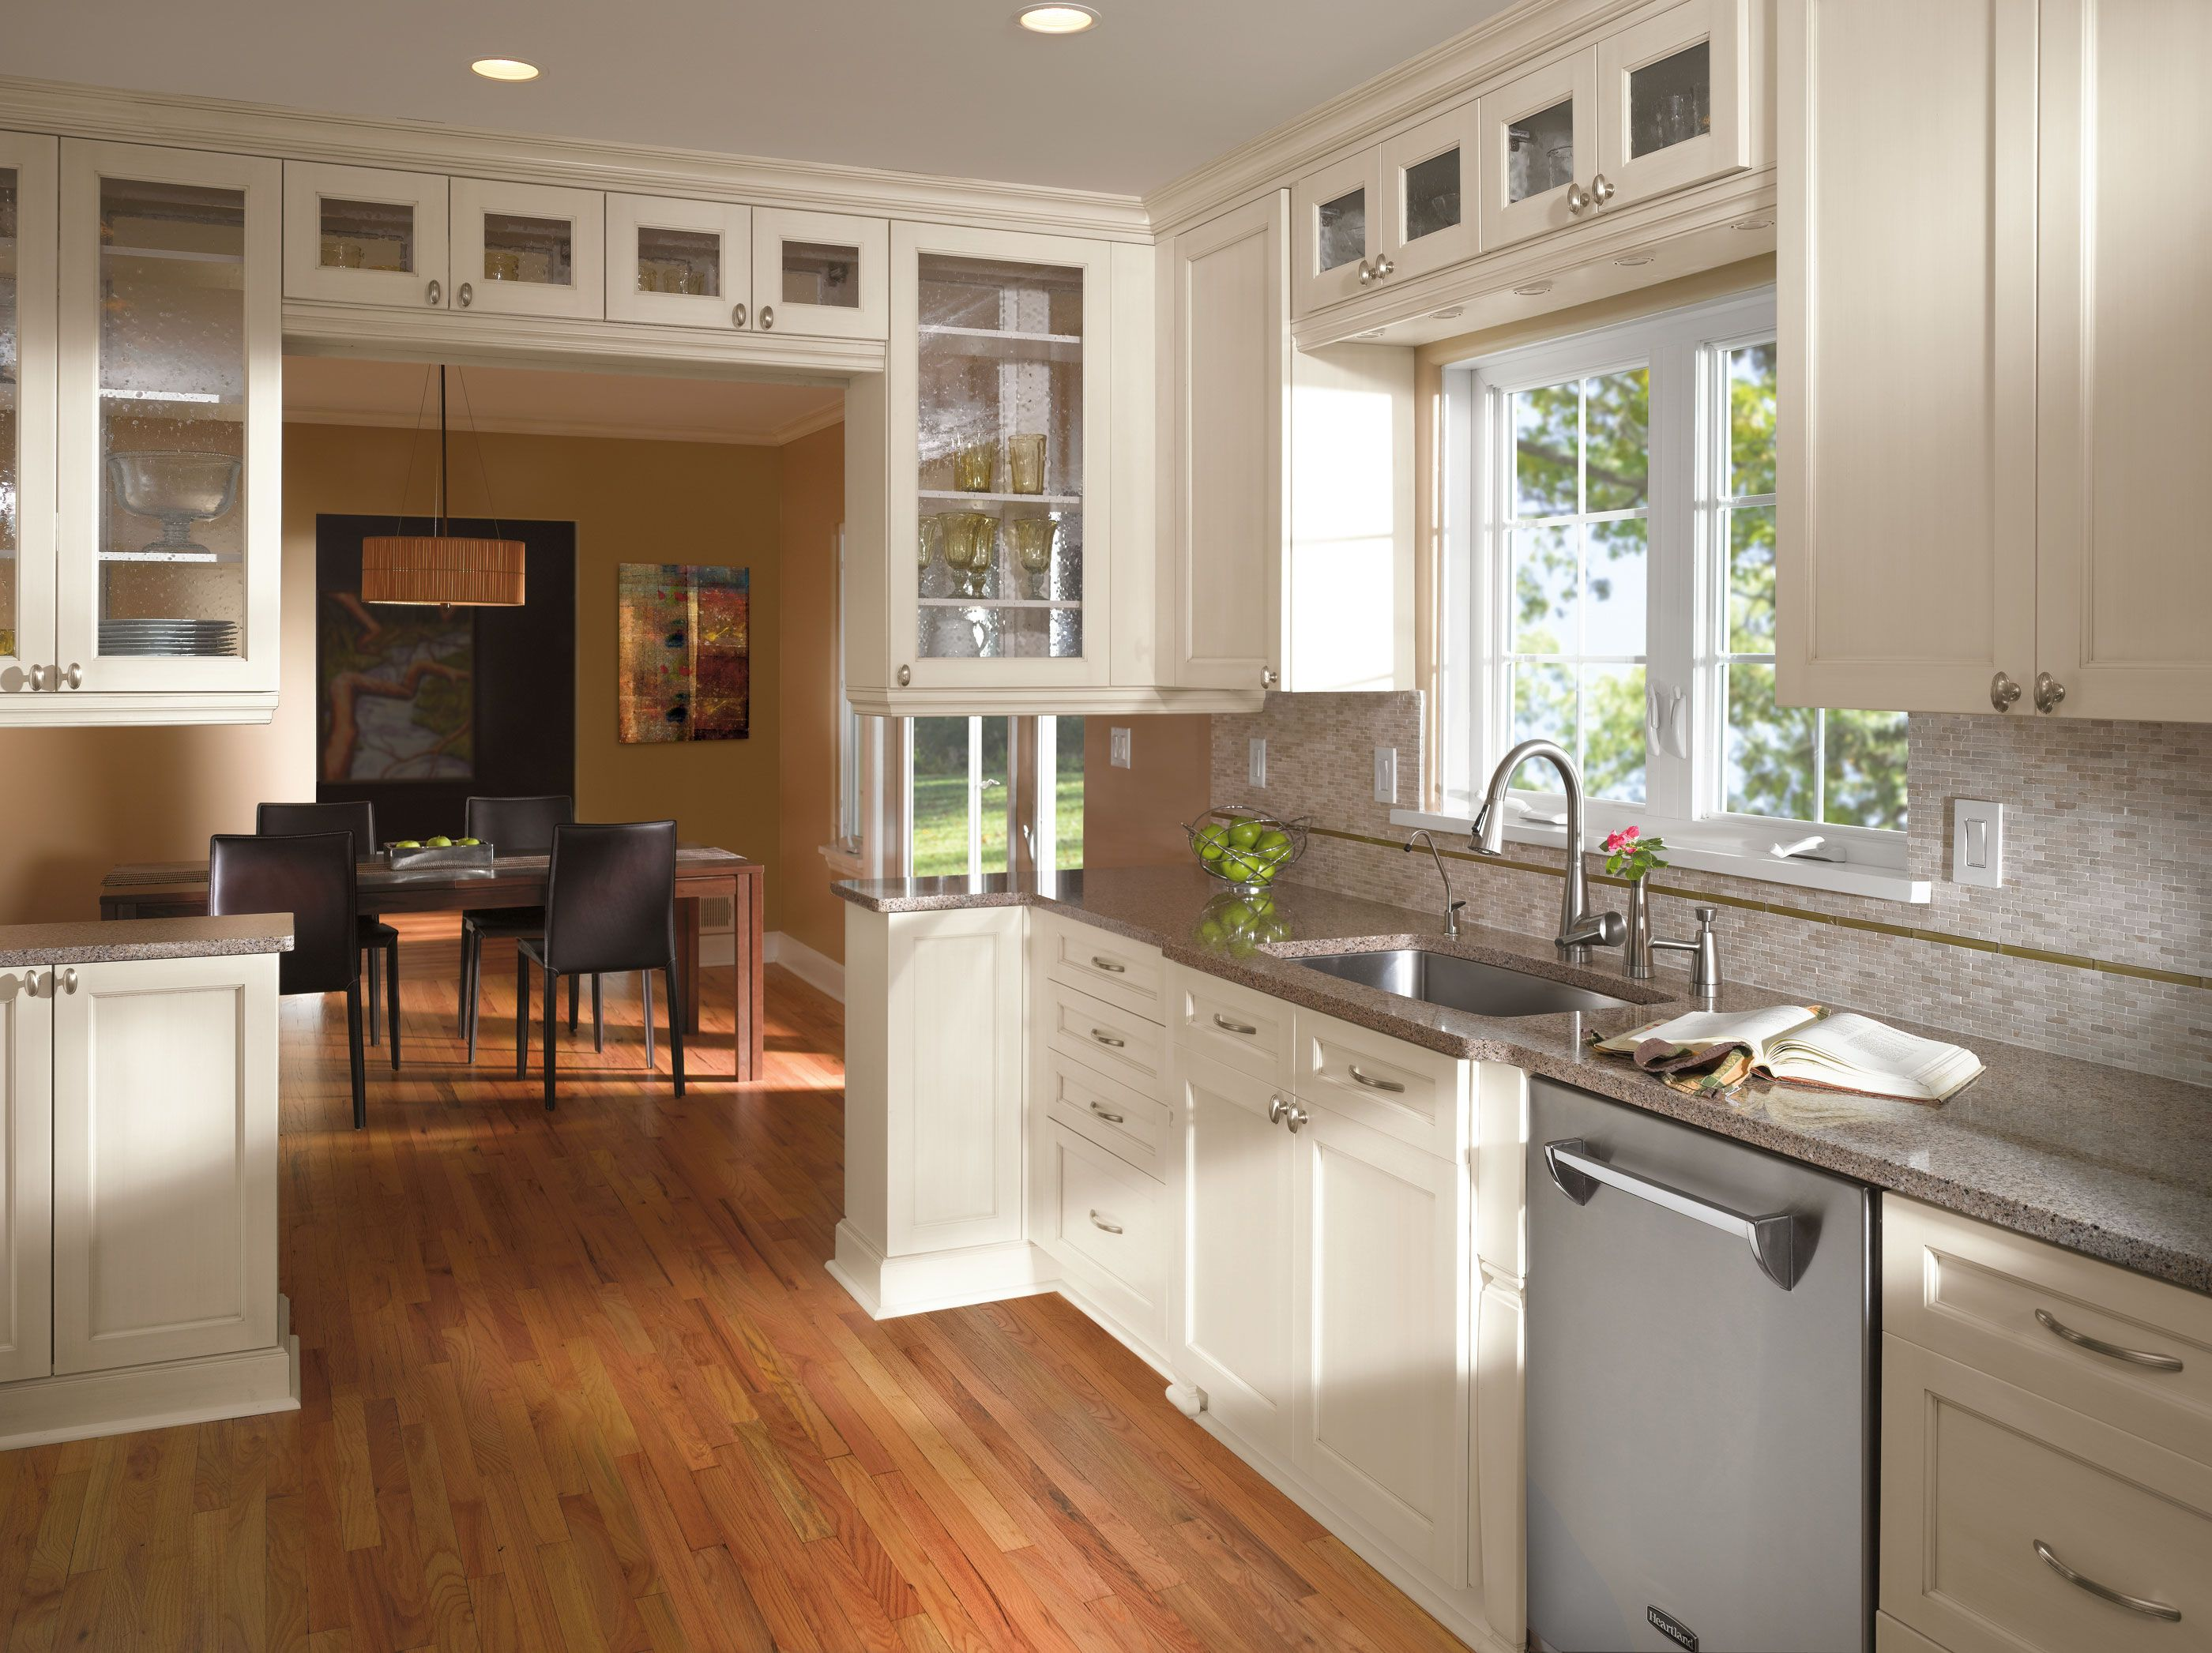 kitchen craft cabinets The Shaker cabinet style inspired Pearson cabinet door style in grayish dark Weathered Slate maple from Kitchen Craft Cabinetry is an adaptable res